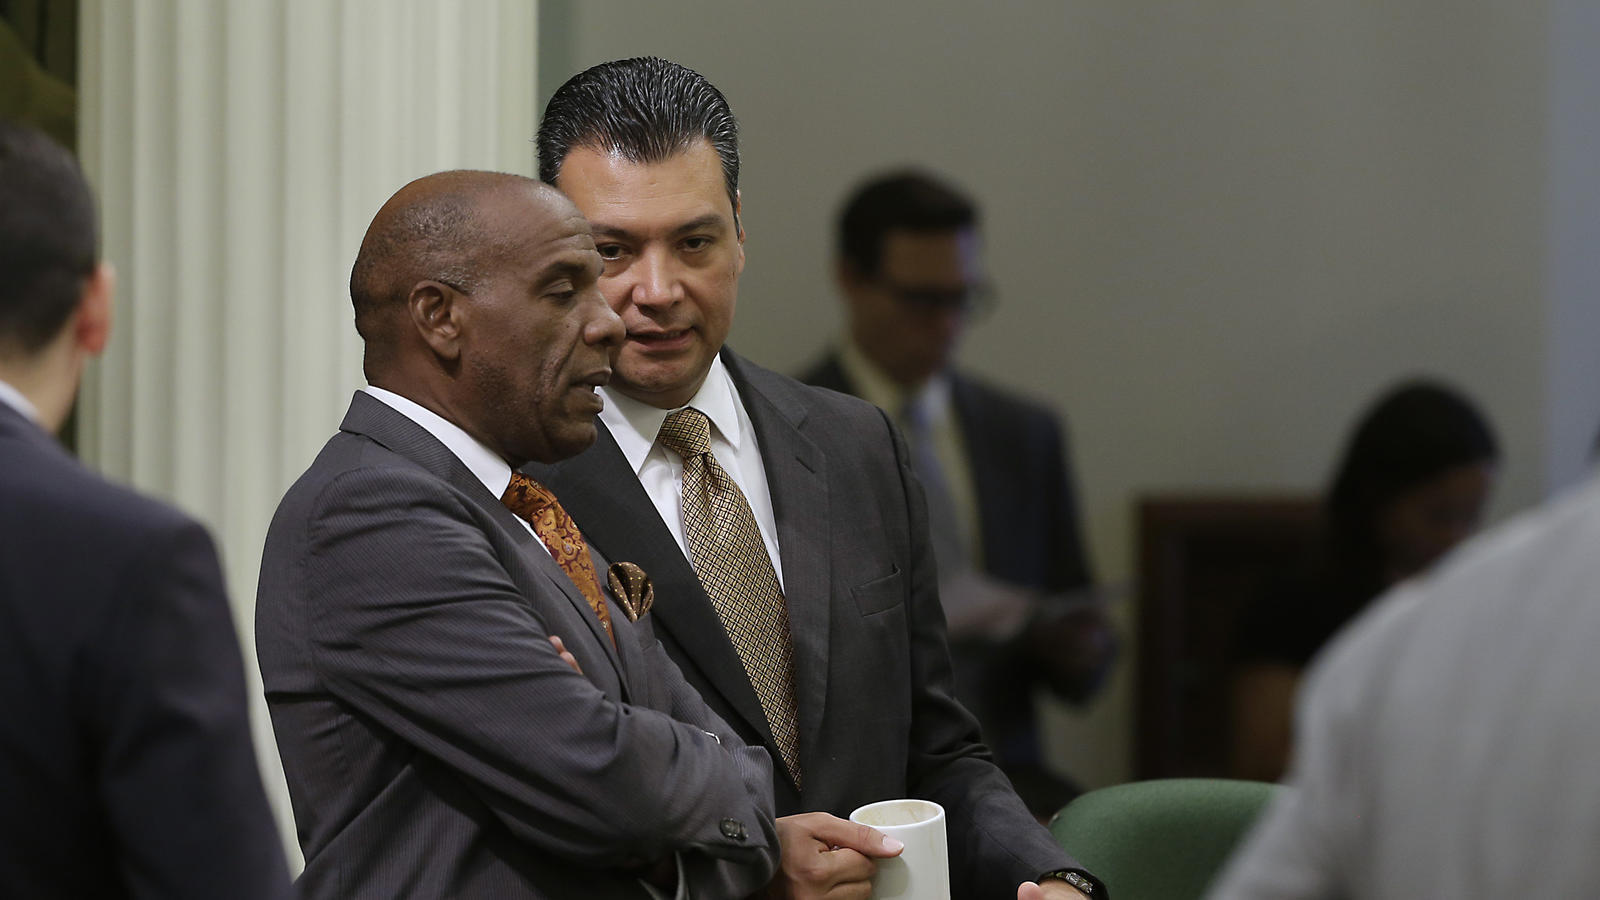 State Sen. Steven Bradford, left, shown talking to Secretary of State Alex Padilla, won a change to sentencing laws Wednesday. (Rich Pedroncelli / Associated Press)